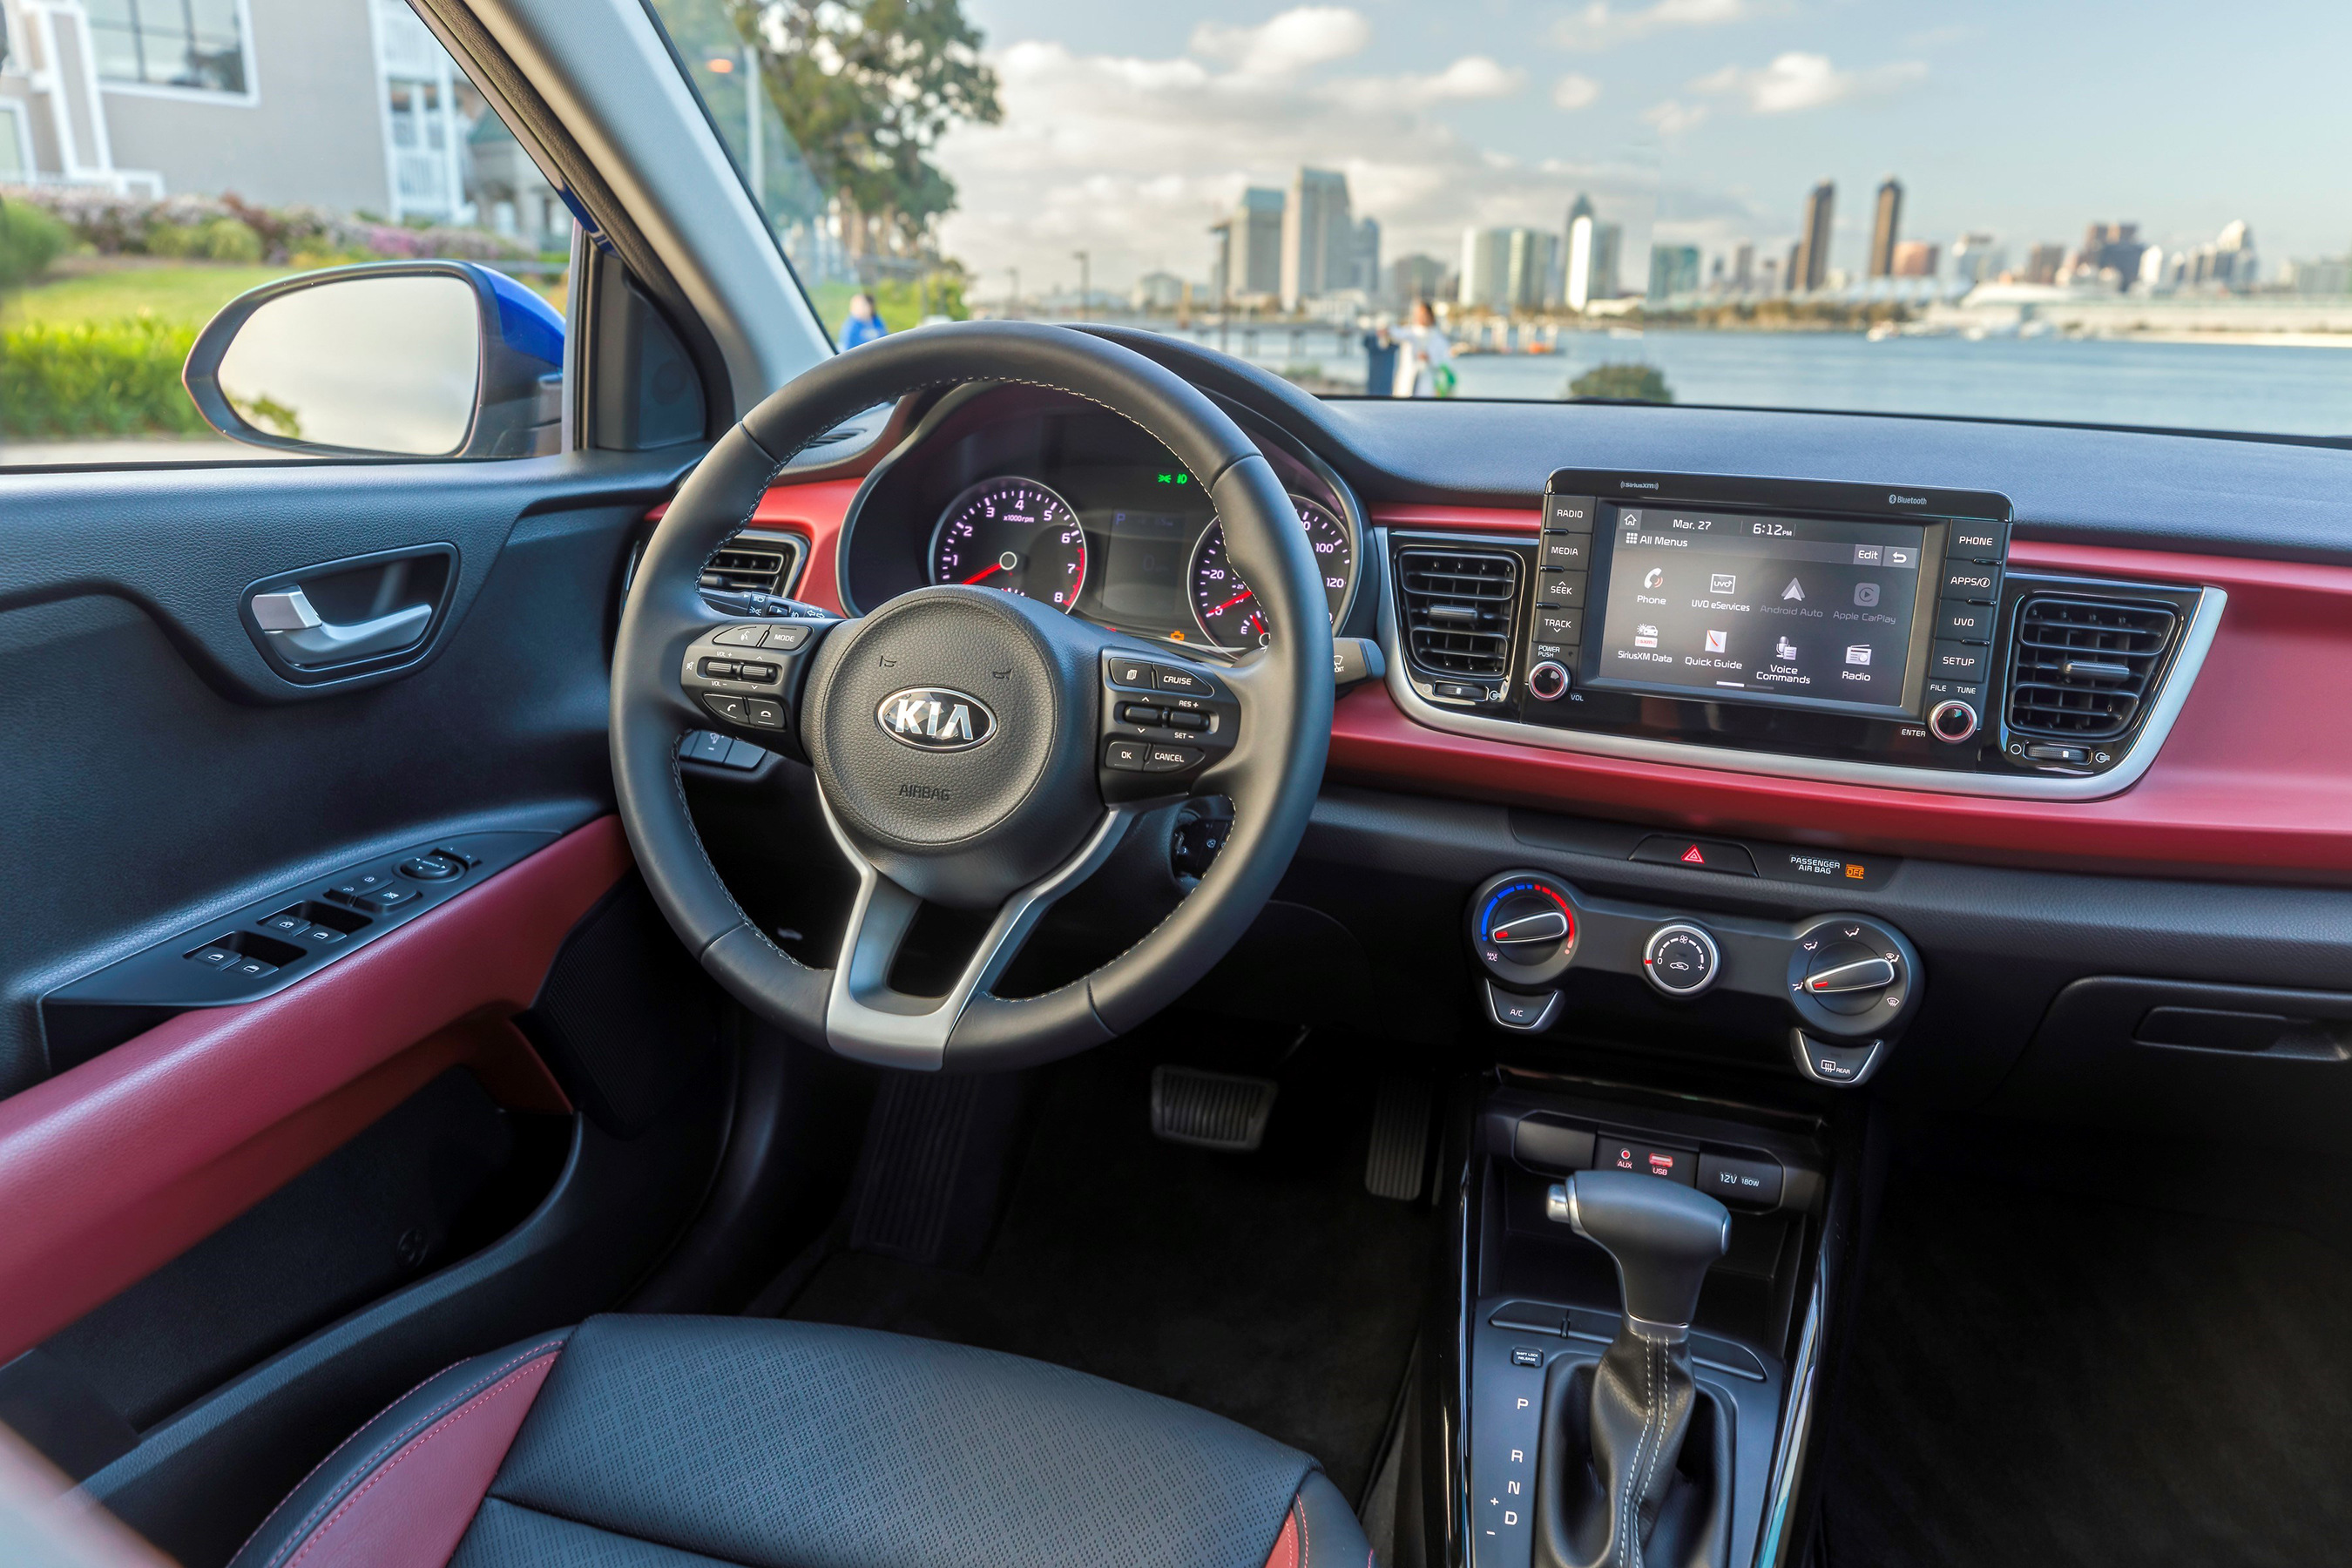 All-new 2018 Kia Rio features available upscale convenience technologies such as a seven-inch touchscreen interface and UVO3 with Apple CarPlayTM and Android AutoTM.